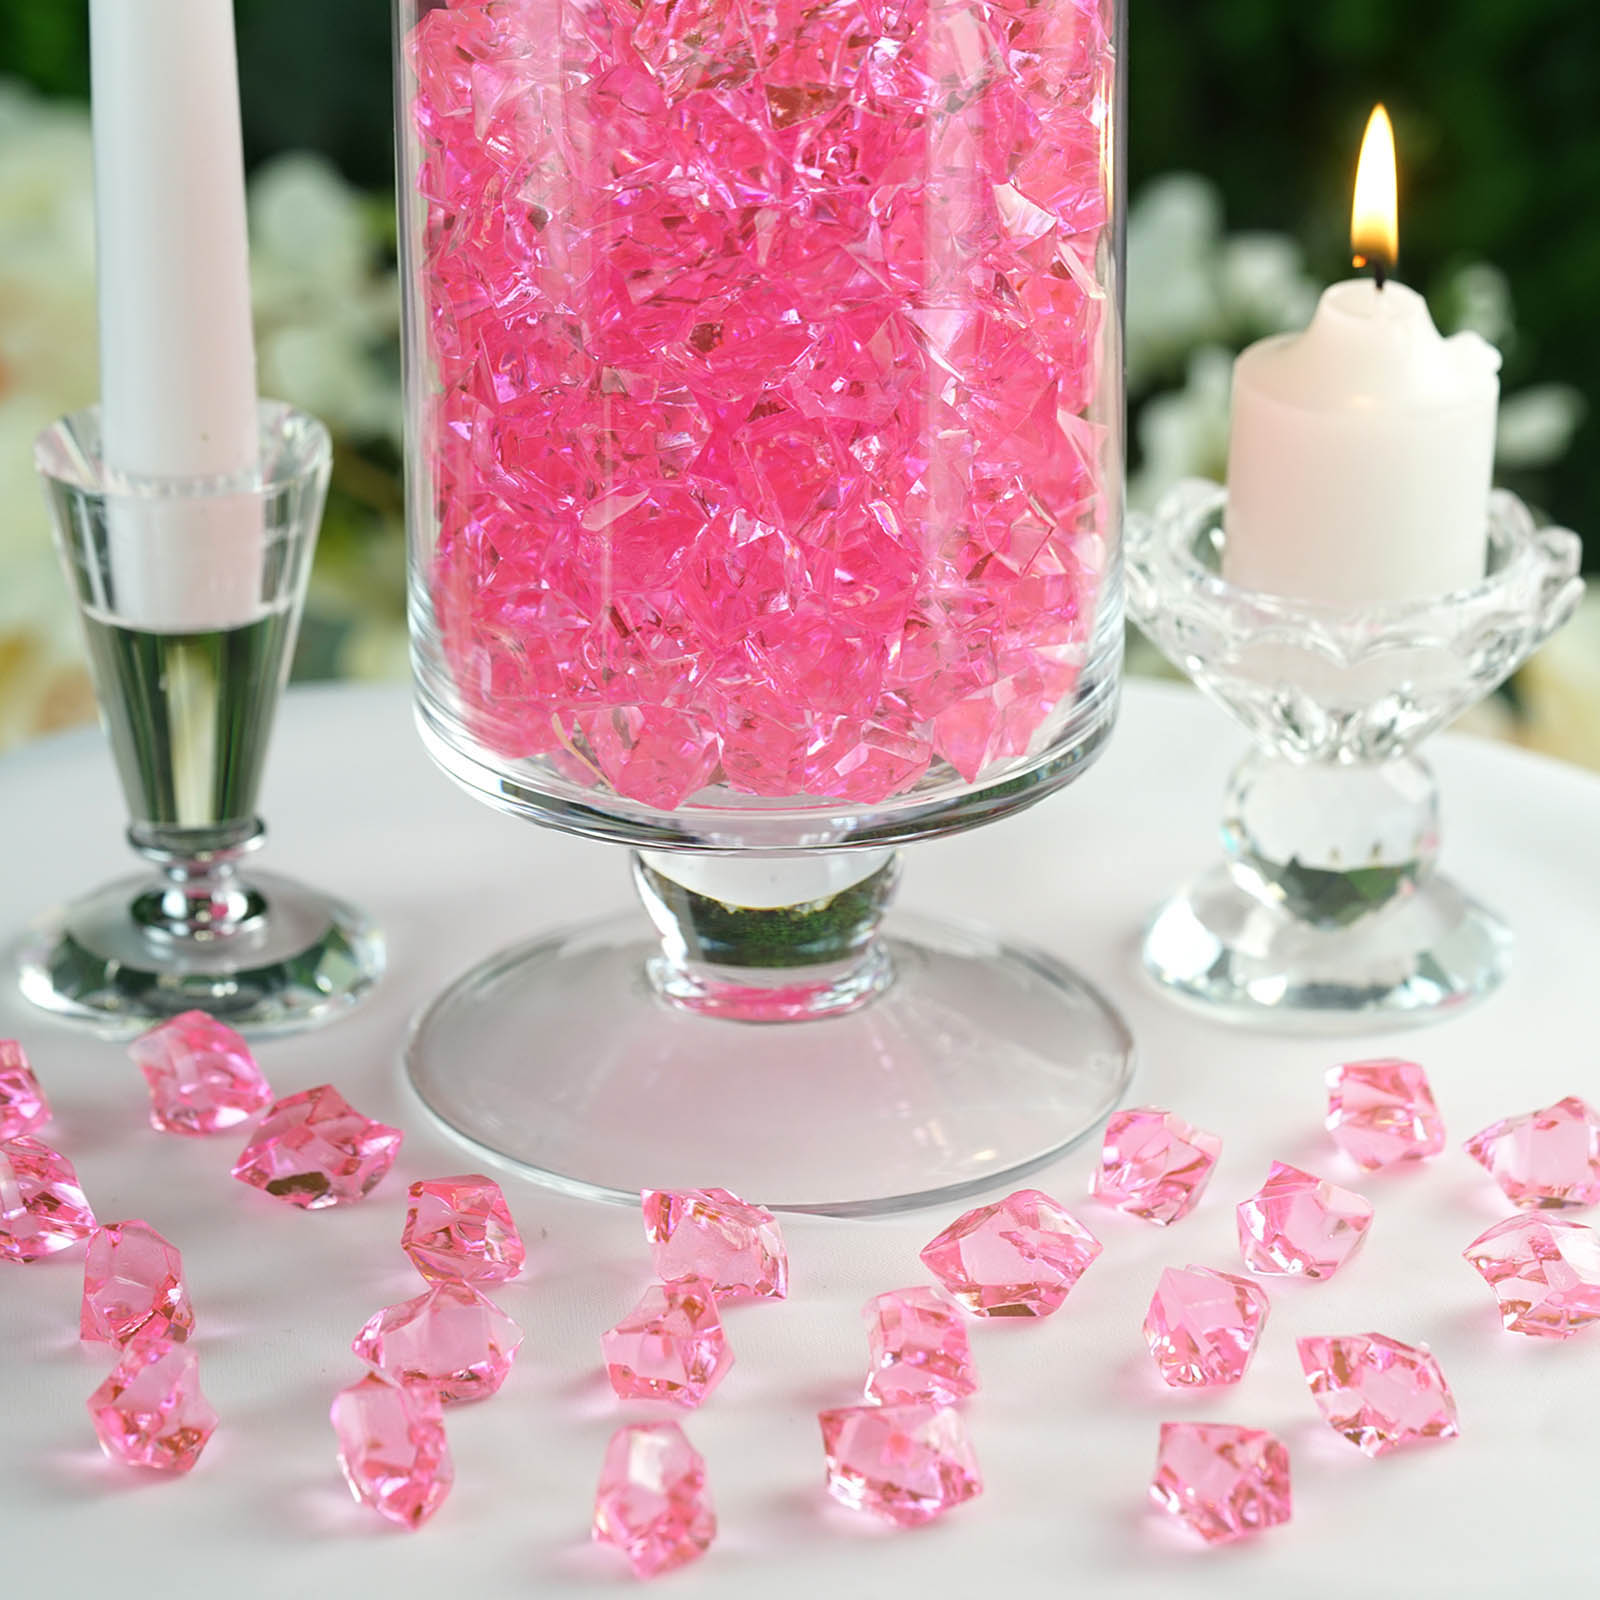 300-Acrylic-Ice-CRYSTAL-LIKE-Pieces-Wedding-Centerpieces-Decorations-Supplies thumbnail 46